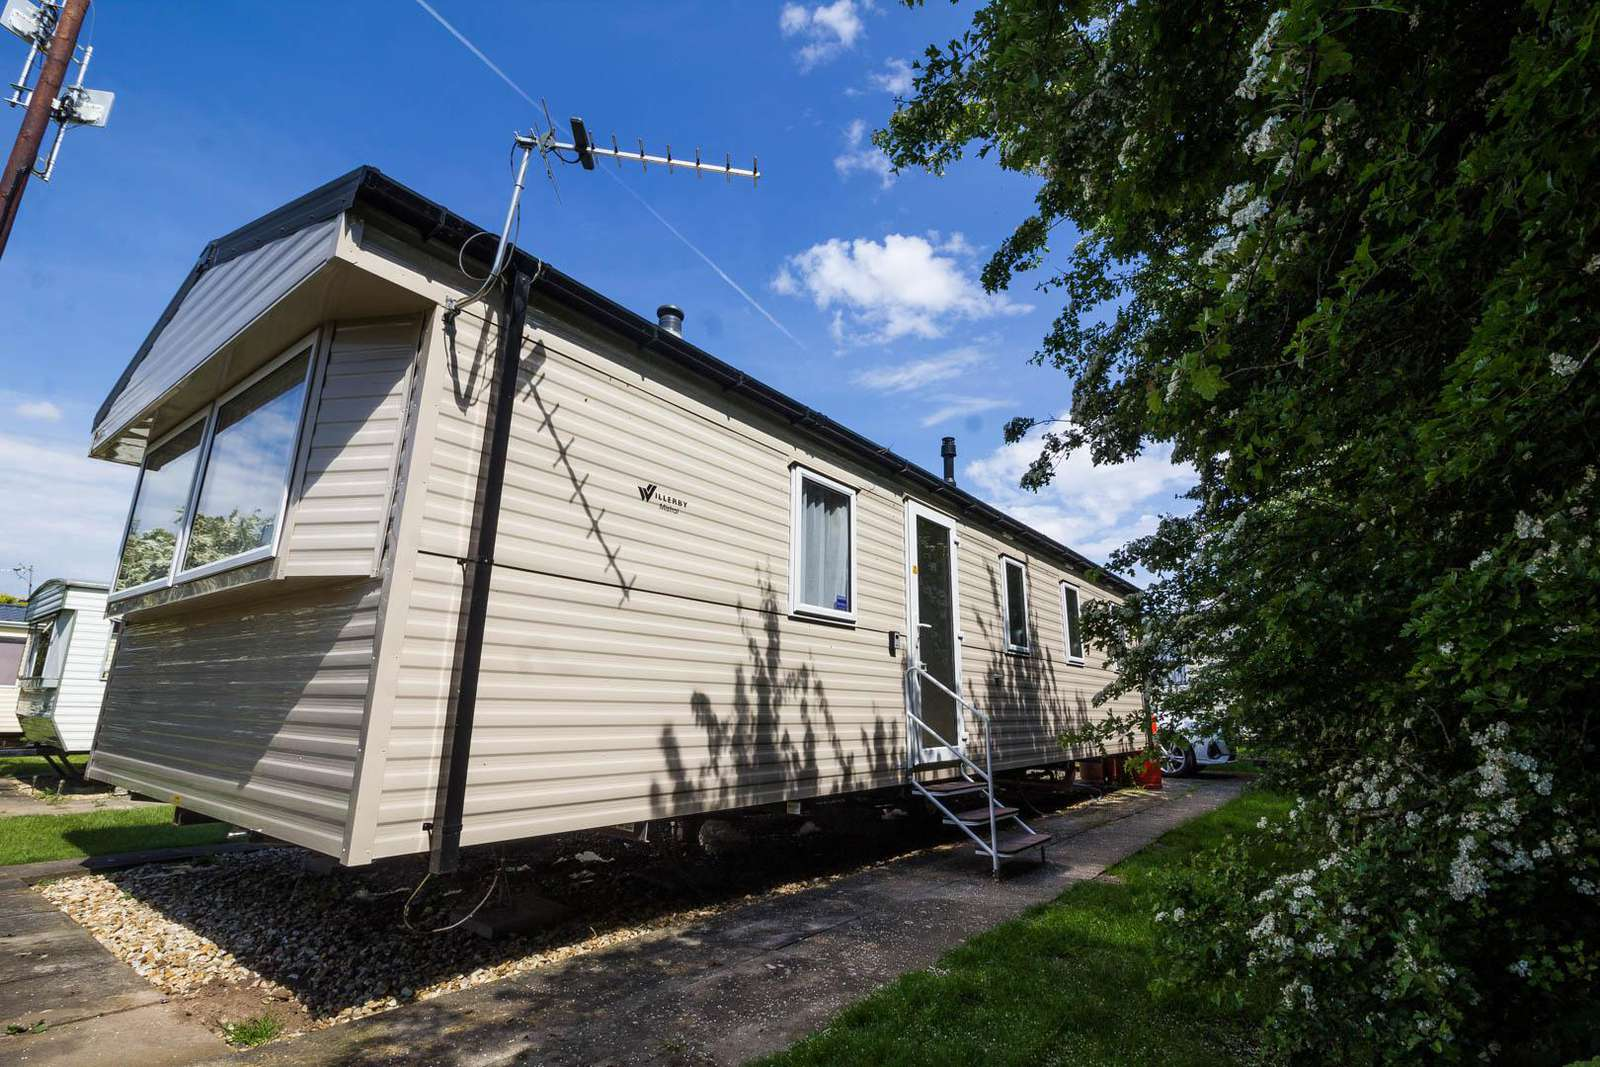 33010TB – The Beeches area, 3 bed, 8 berth caravan with D/G & C/H. Diamond rated. - property